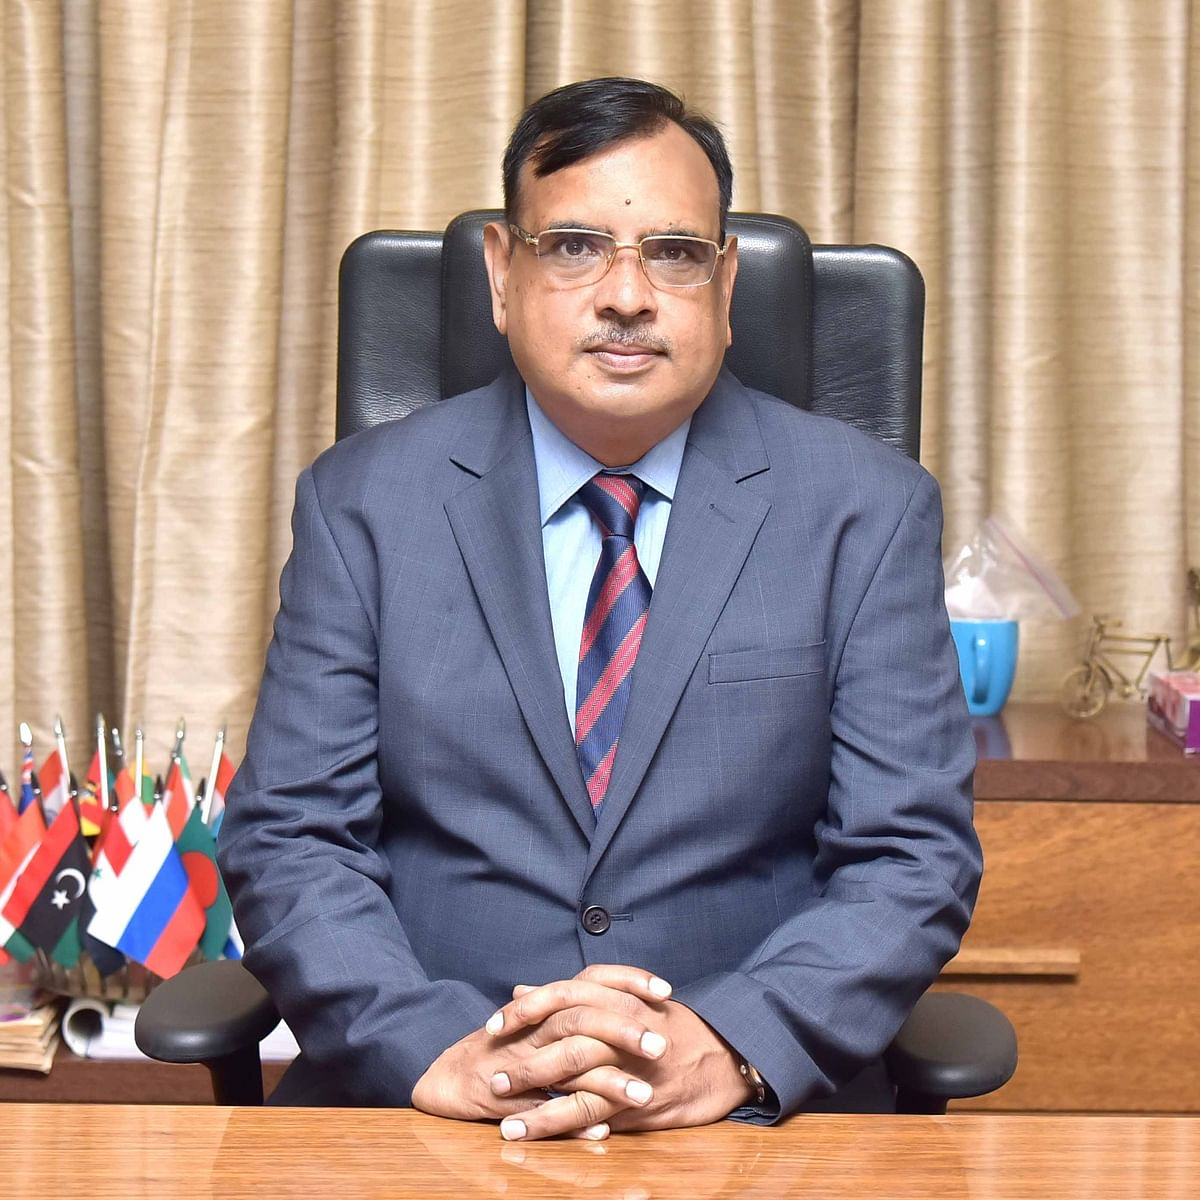 Alok K. Gupta takes over as Managing Director & CEO of Oil and Natural Gas Corporation Videsh